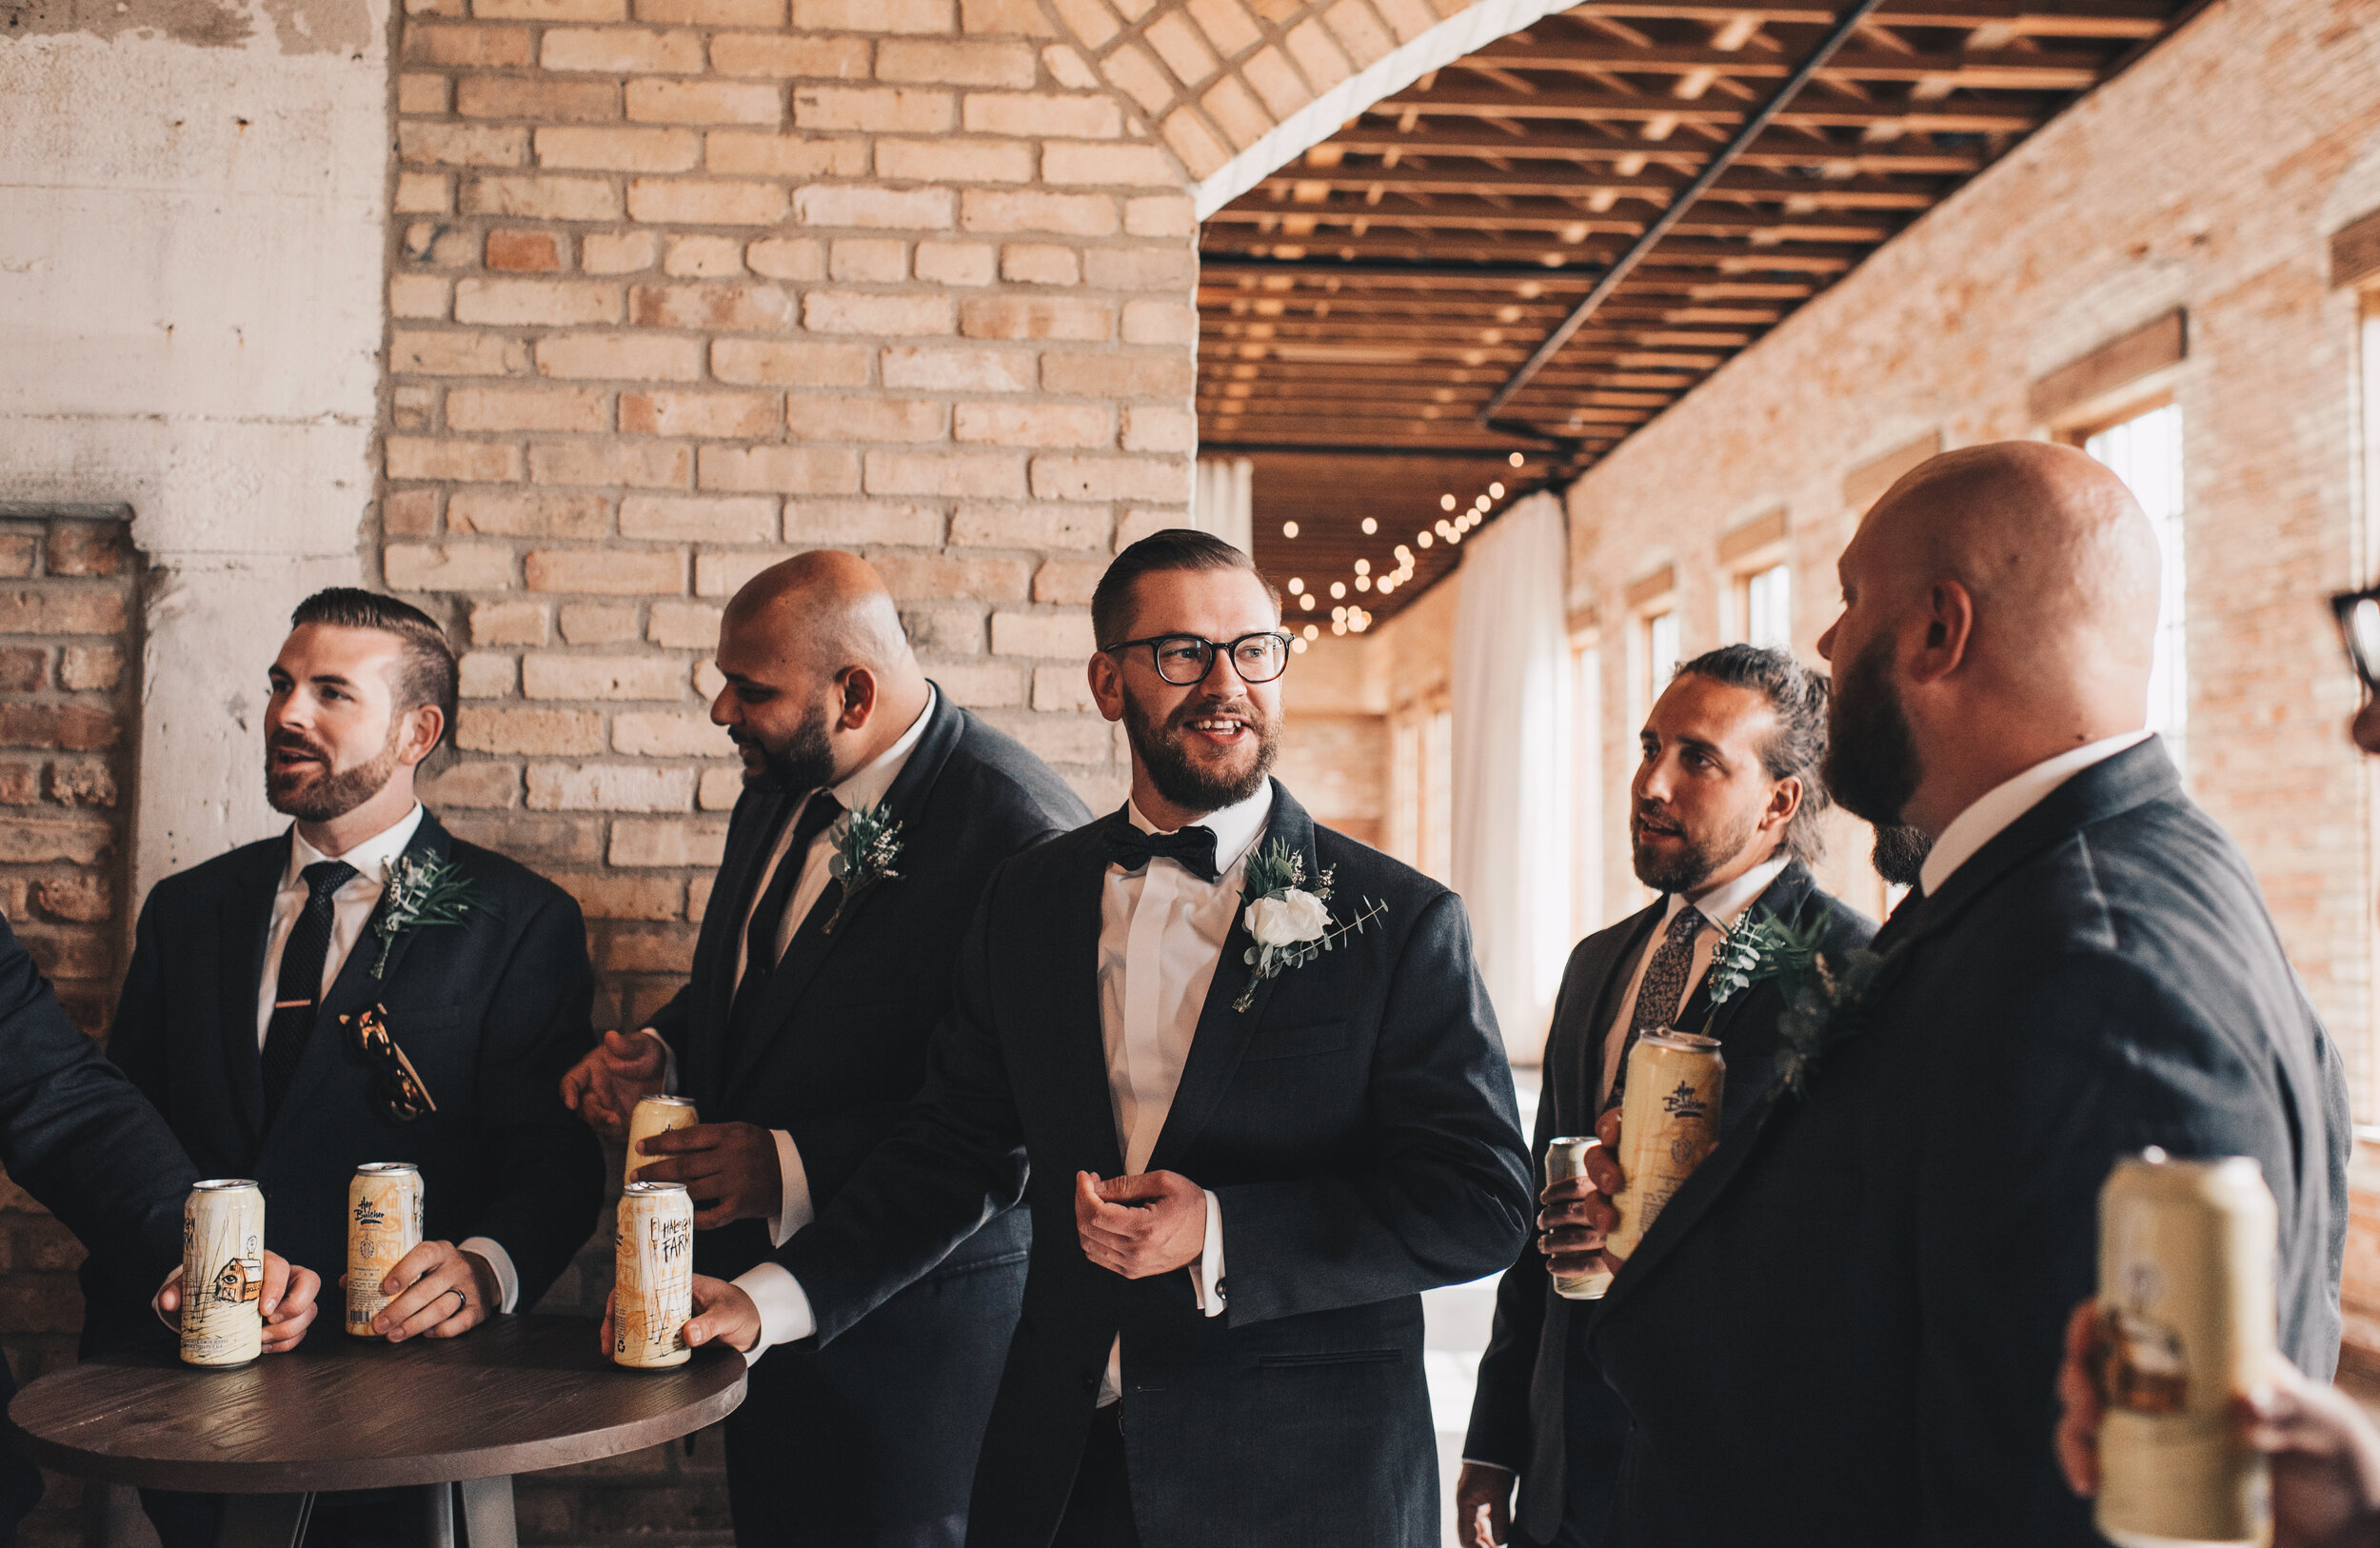 Modern Industrial Wedding, The Brix on the Fox, The BRIX, Groom Attire, Modern Midwest Wedding, Groom and Groomsmen Photos